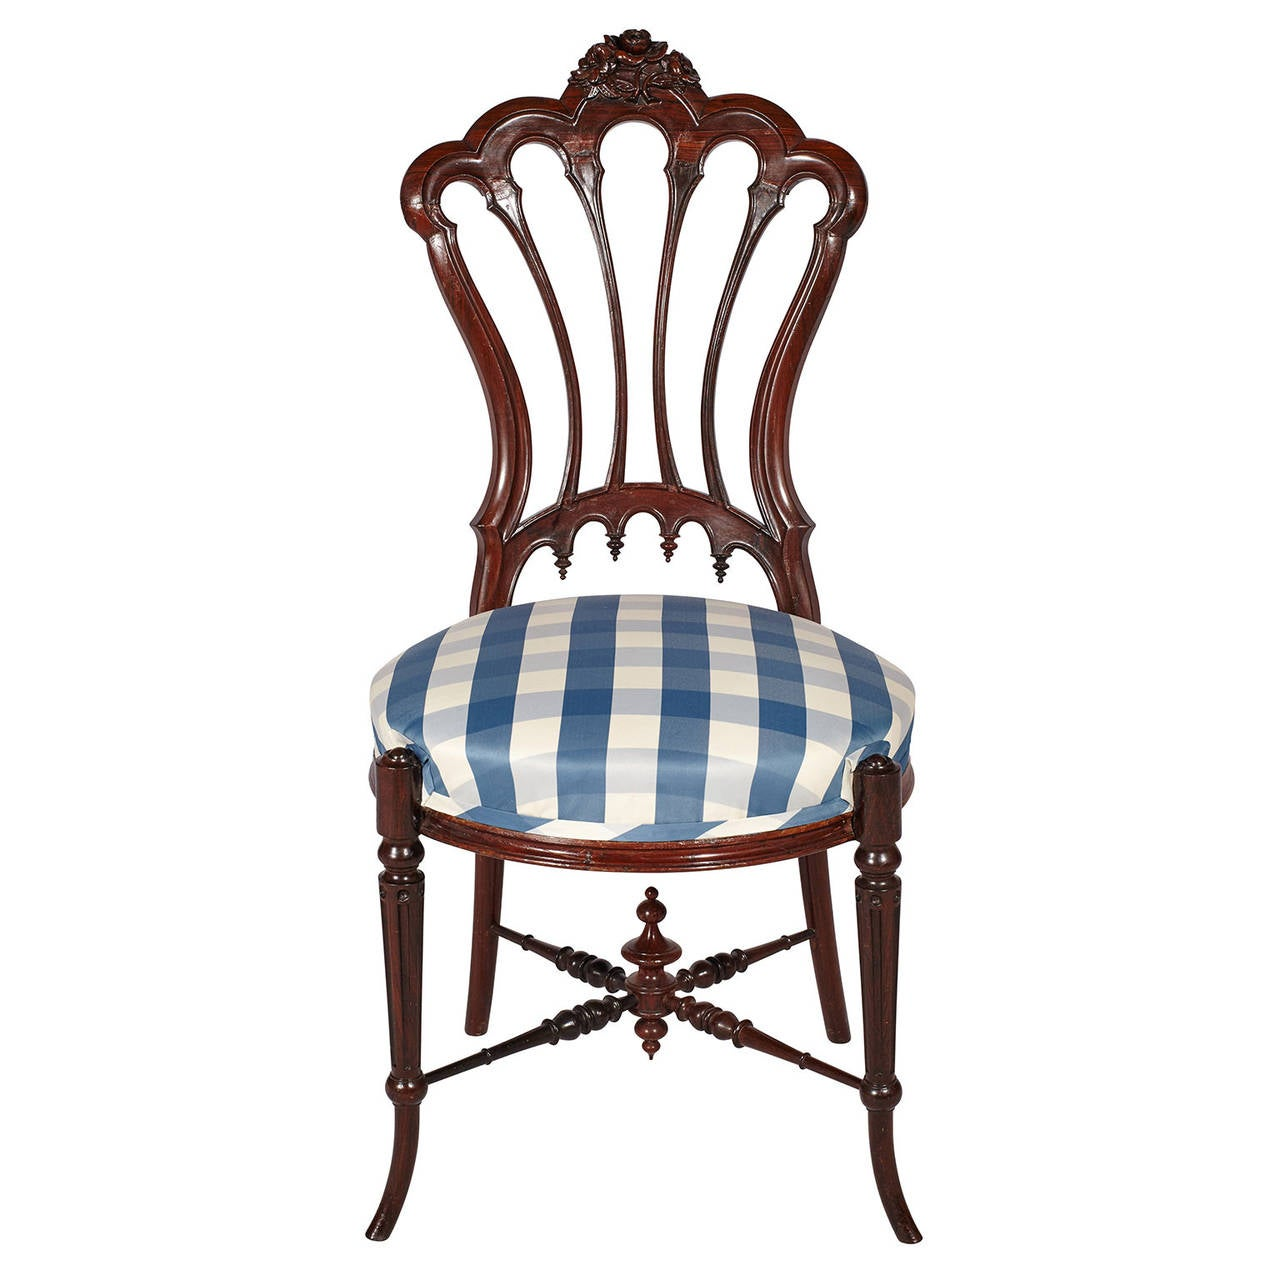 Petite Chairs Petite French Ballroom Chair At 1stdibs